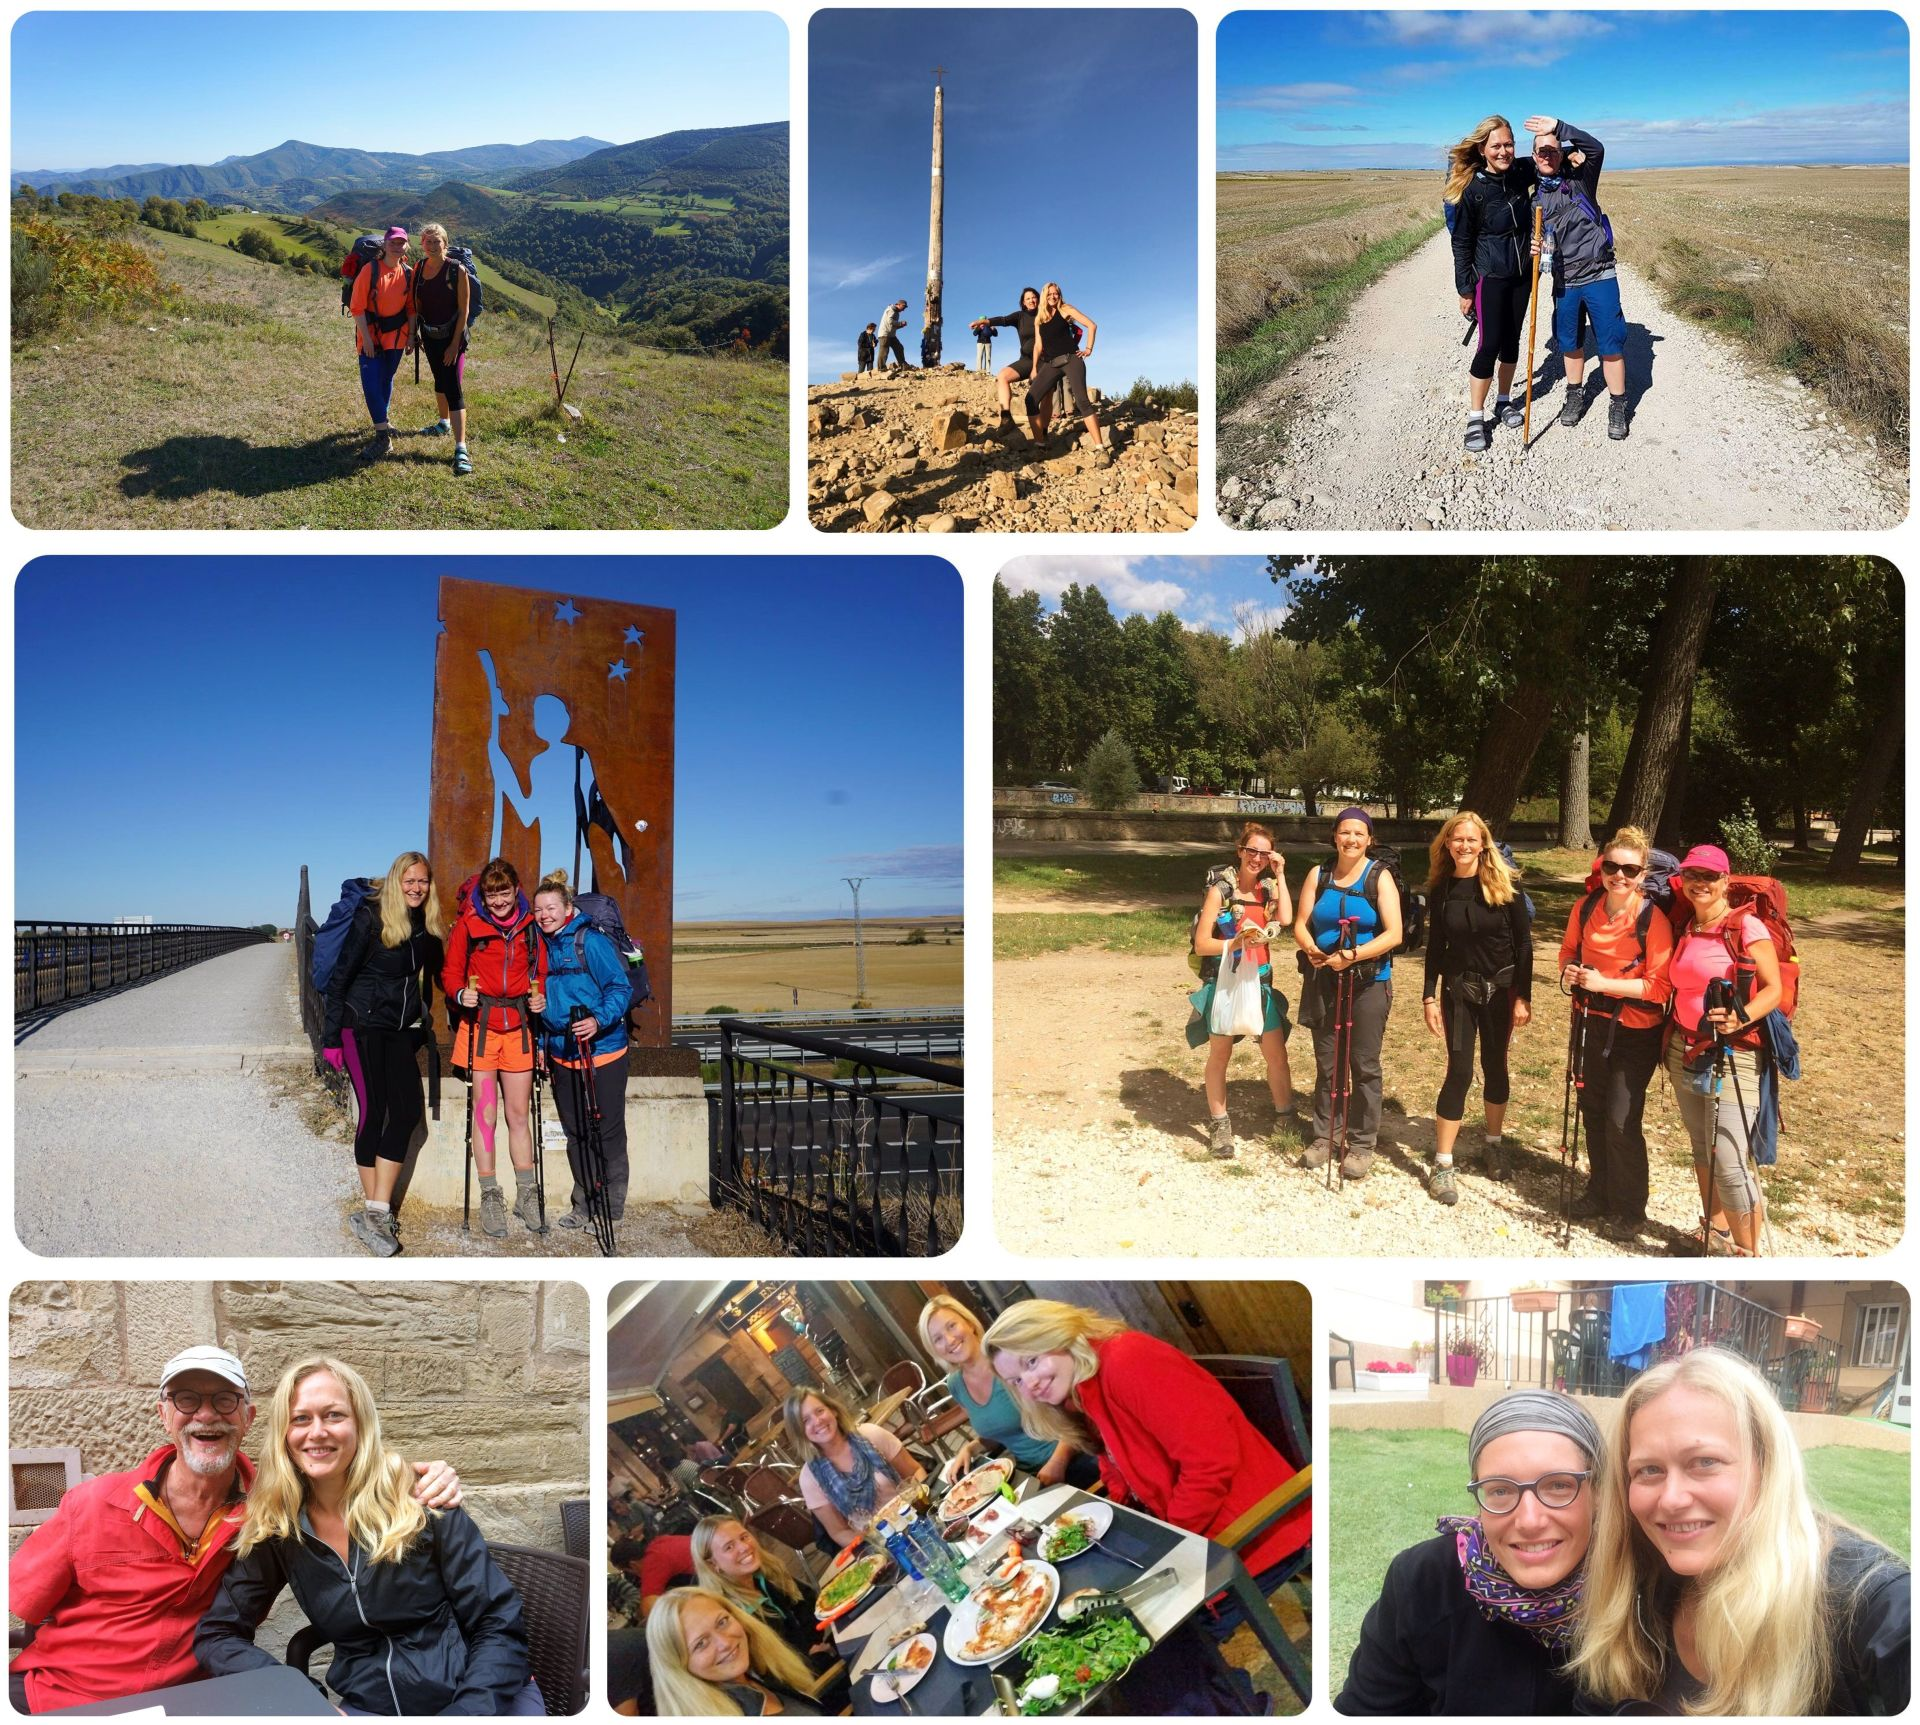 Camino de Santiago friends